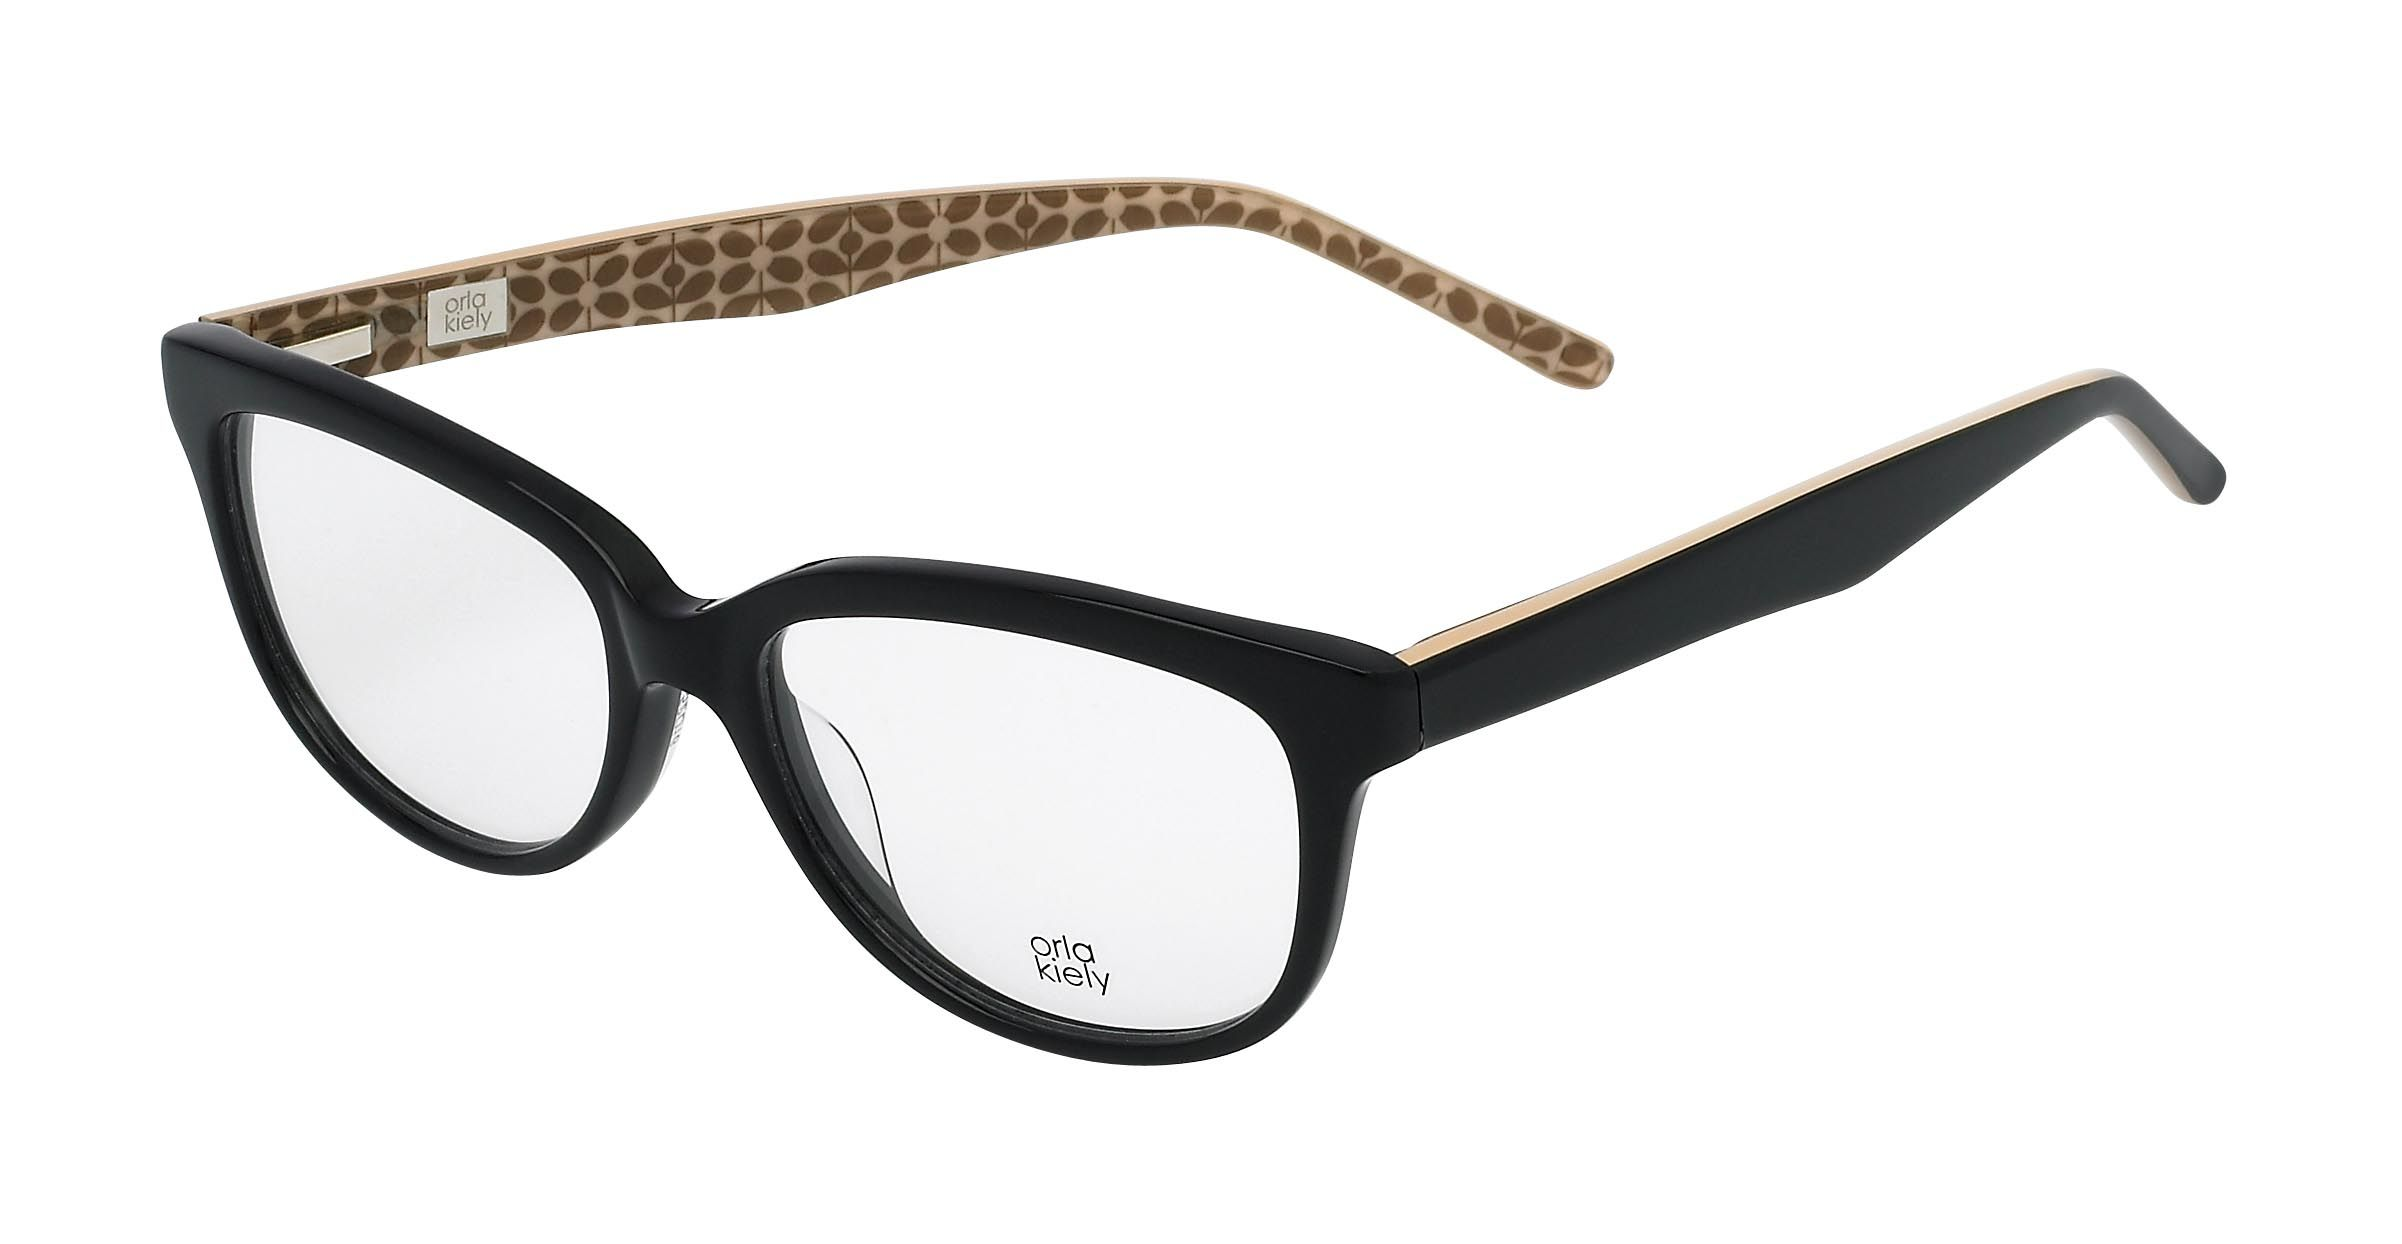 569a1dfa2443 Orla Kiely glasses avaliable at Boots Opticians